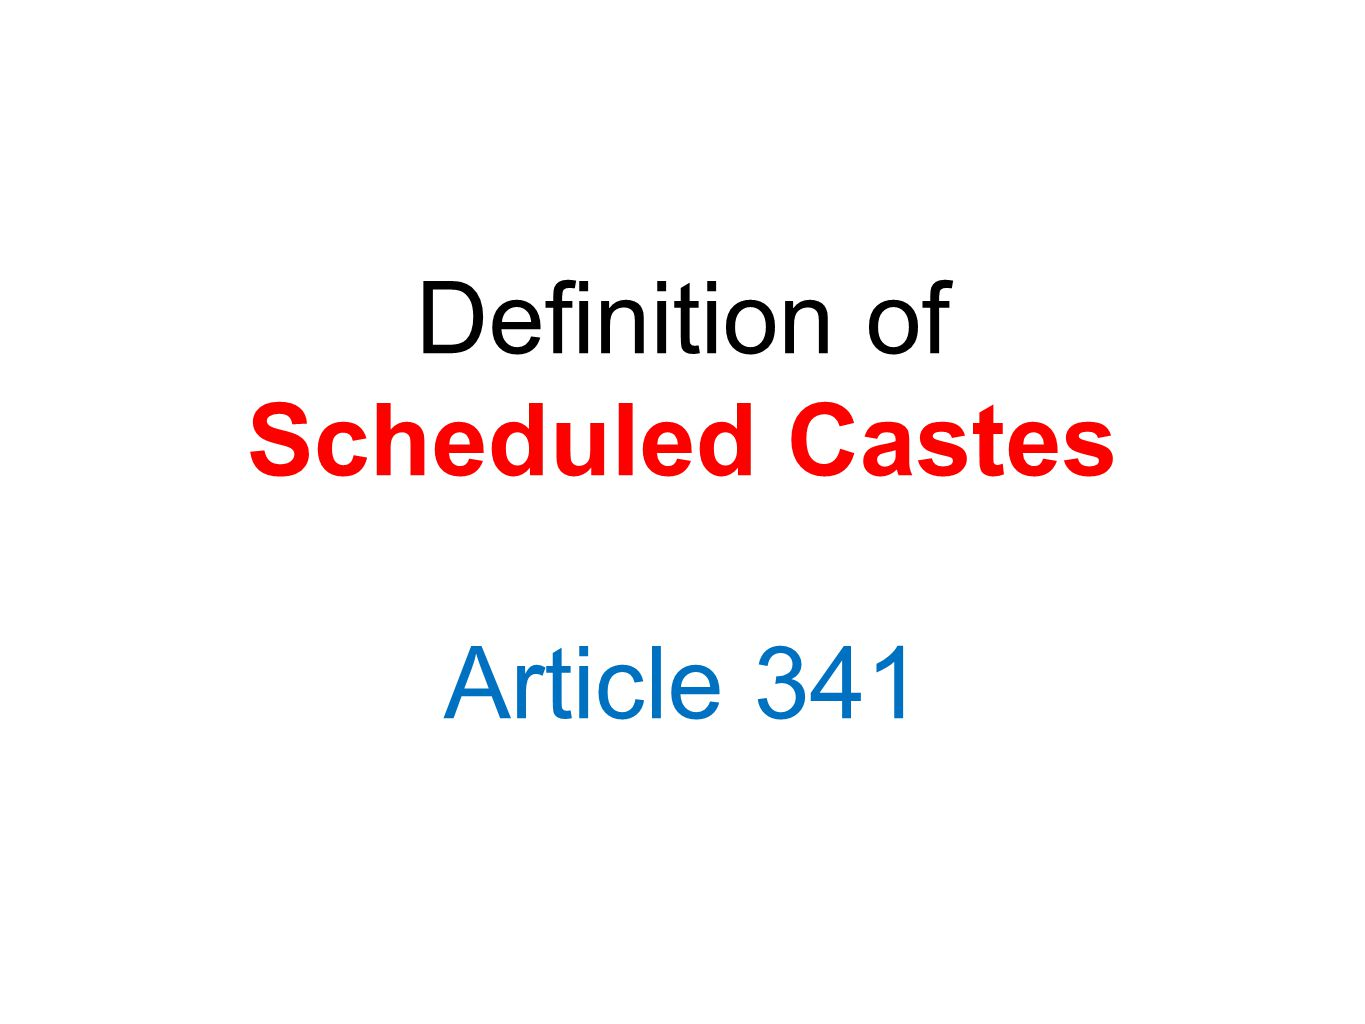 Sachar Committee recommended: The level of Secretary, CWC shoushould atleast be Joint Secretary to the Government of India The Waqf Bill 2010 ignores this vital recommendation.